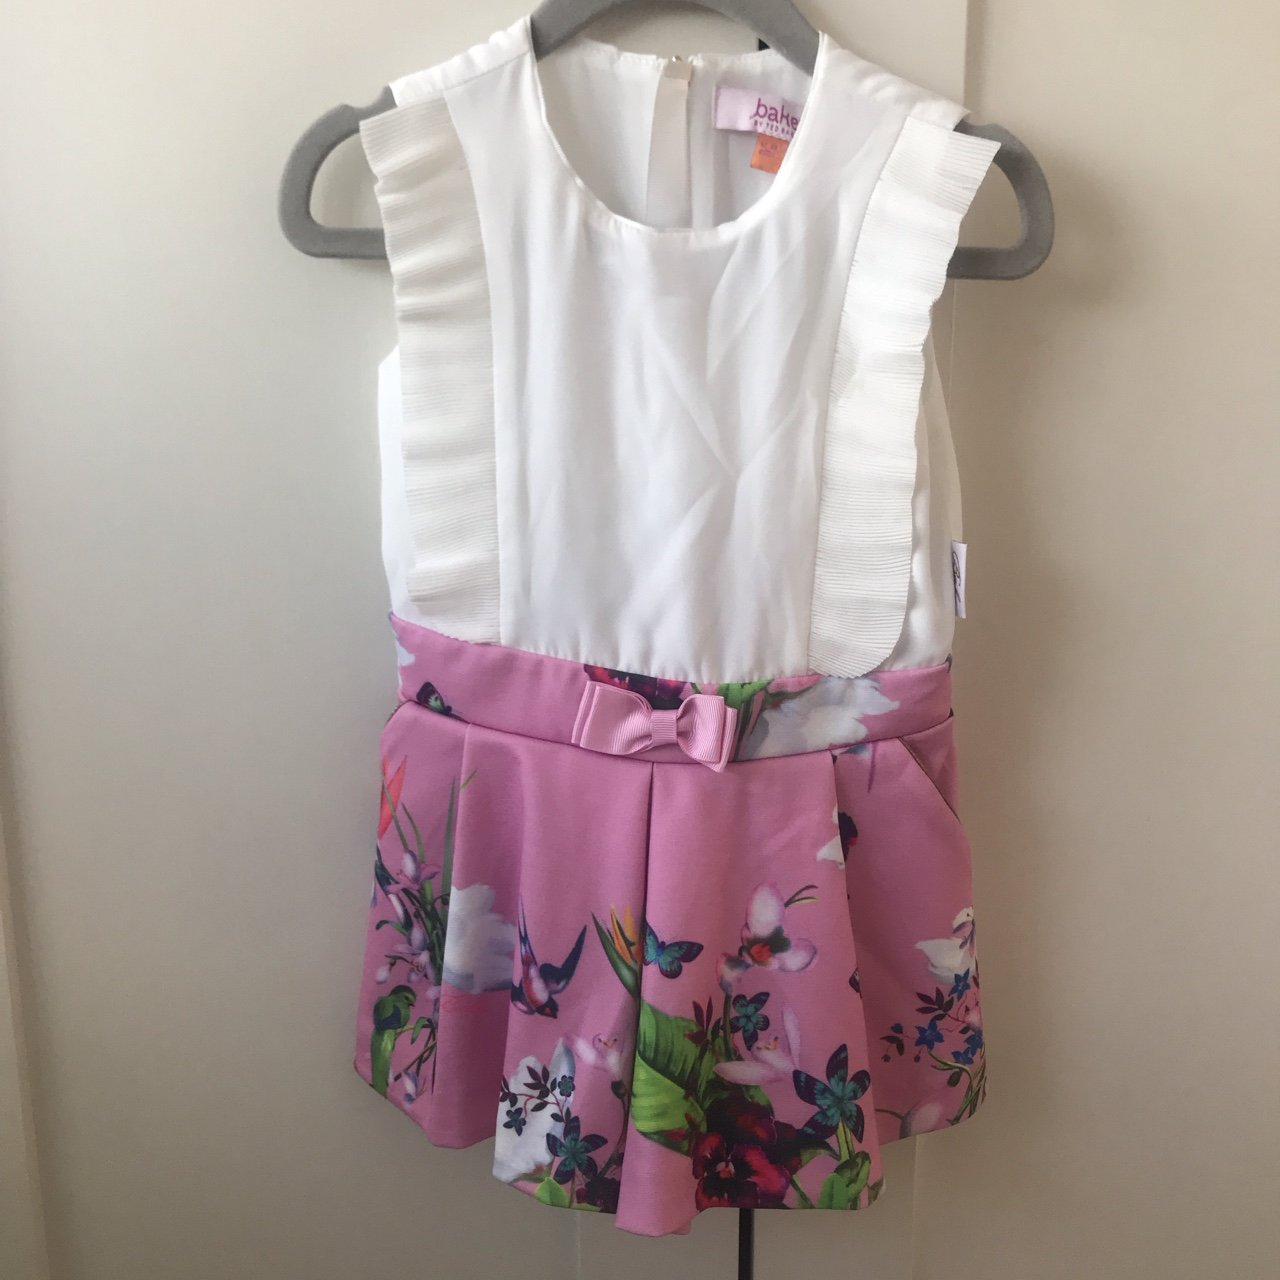 6ae31f84d271 Girls river island top size. £6. Baker baby playsuit size 12-18m